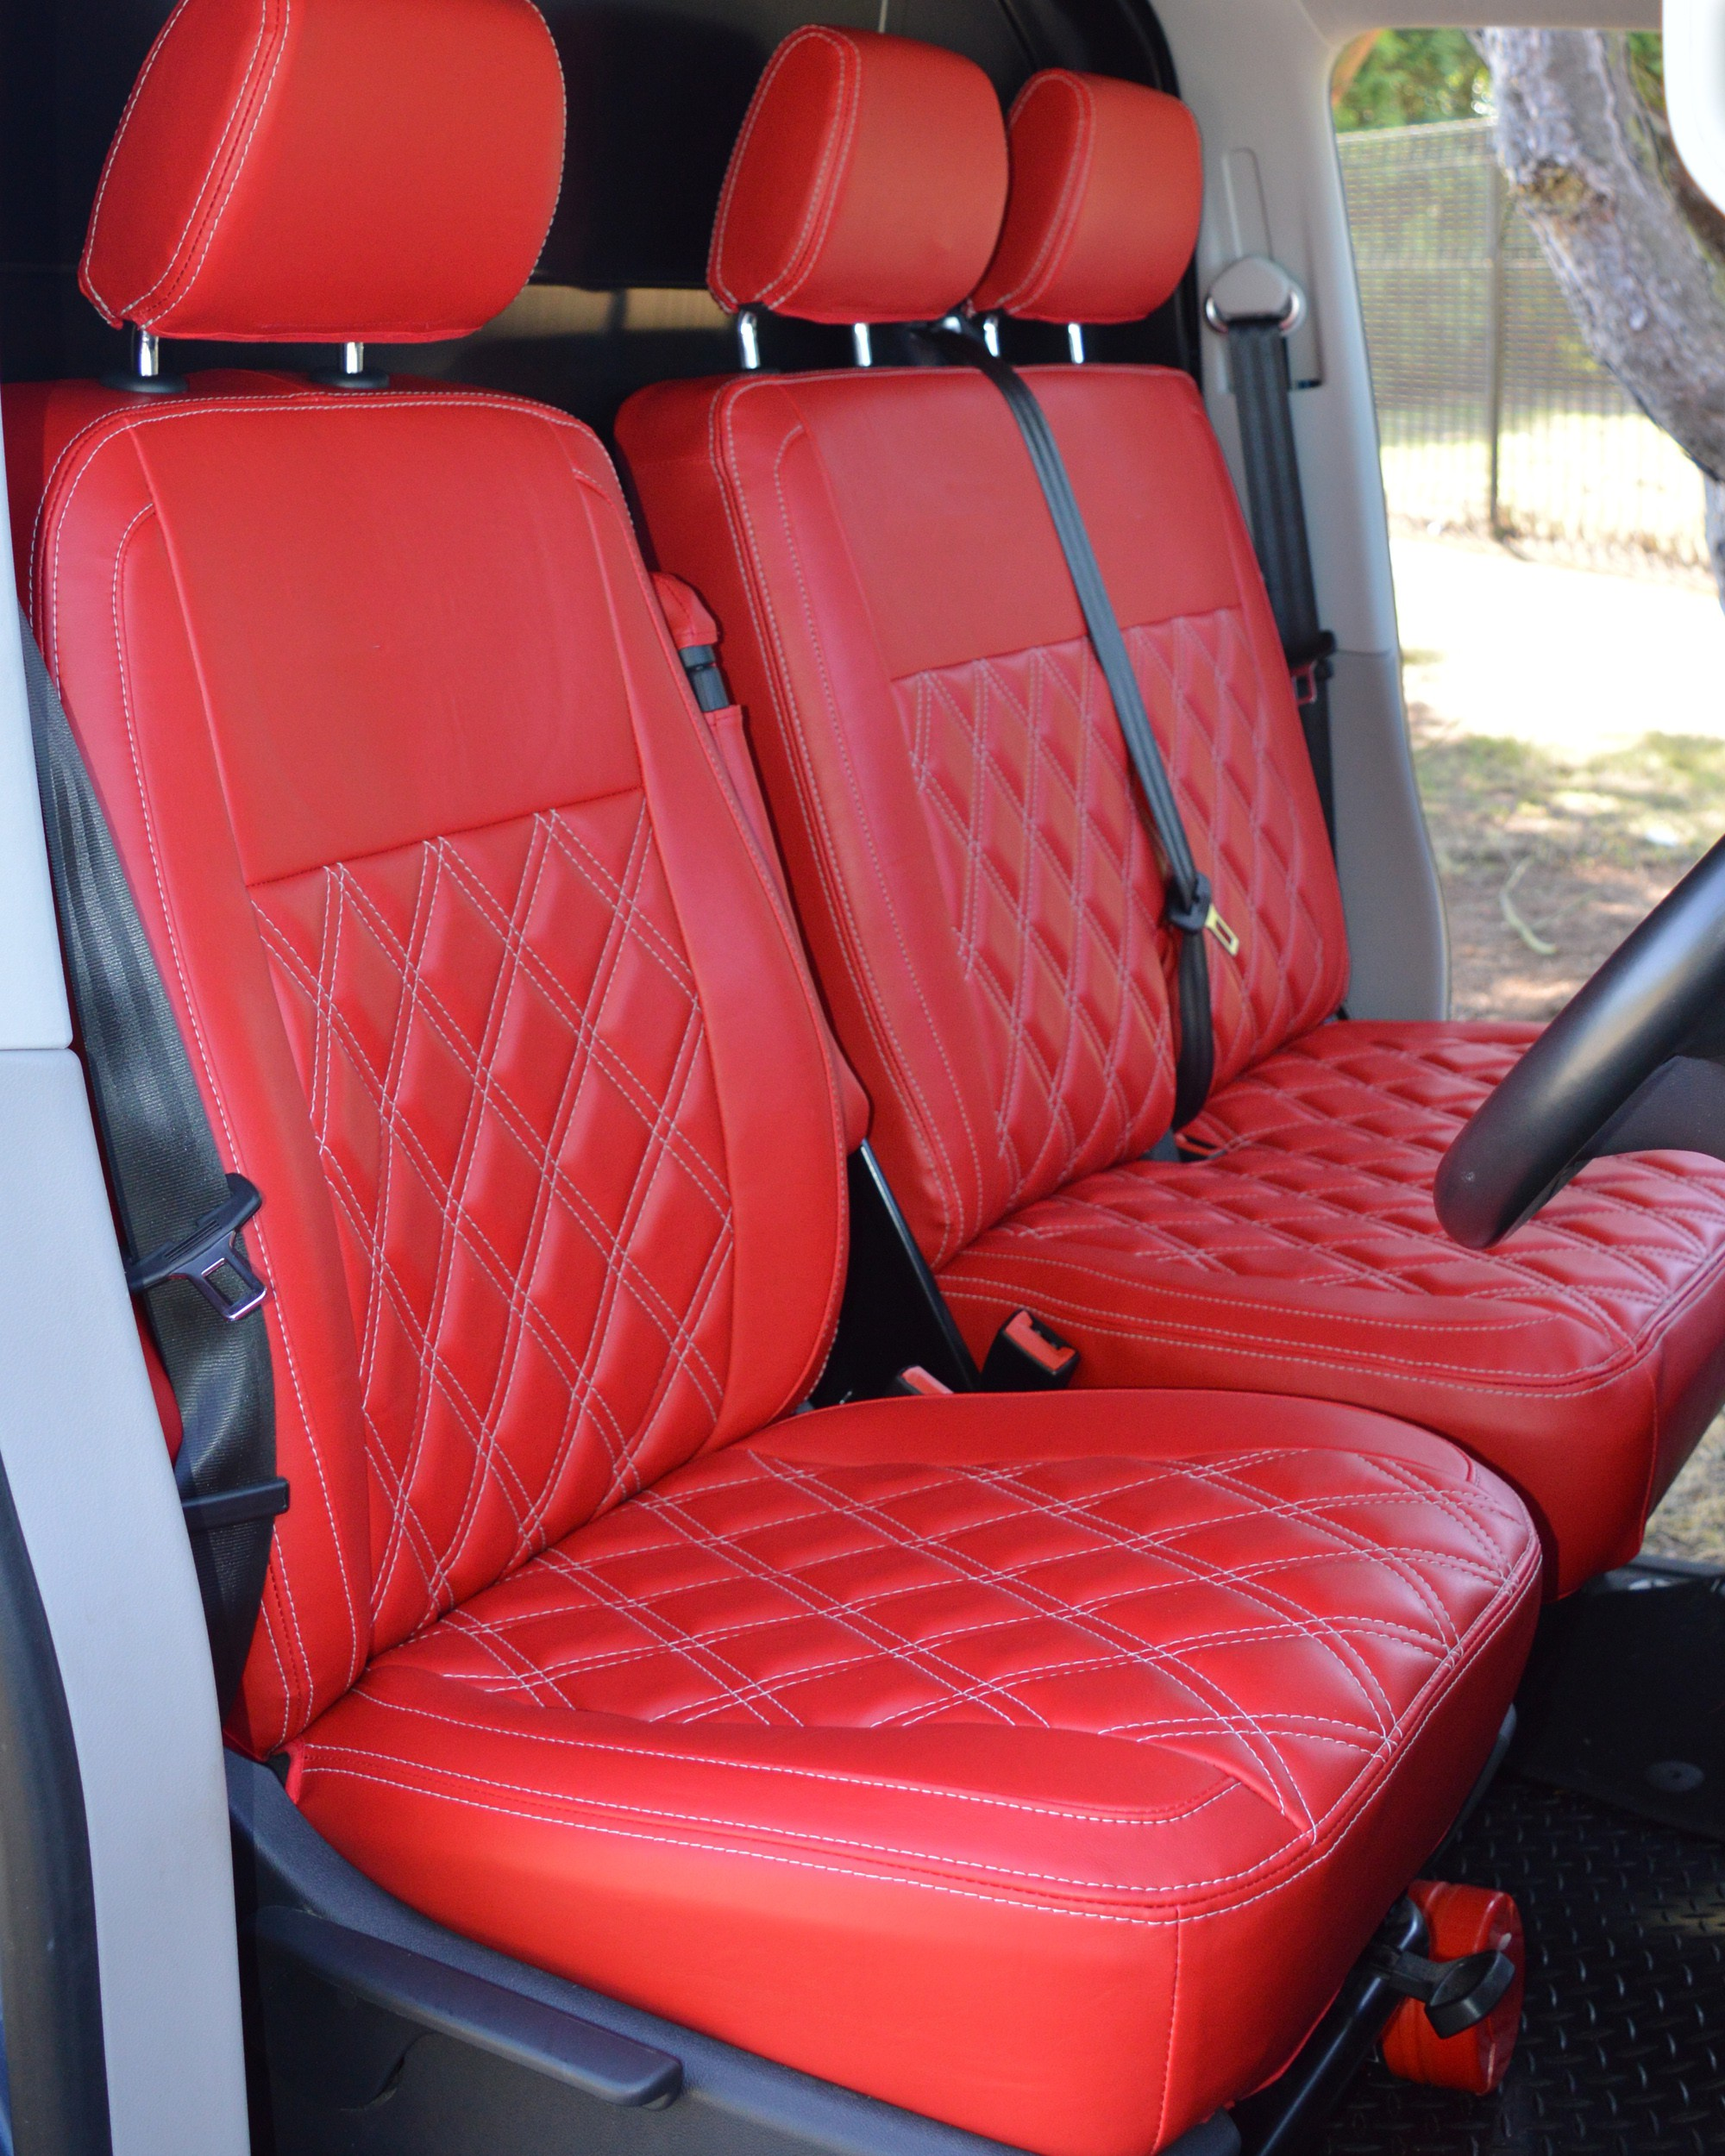 VW Transporter T5 Highline Kombi Seat Covers Red Diamond Quilted